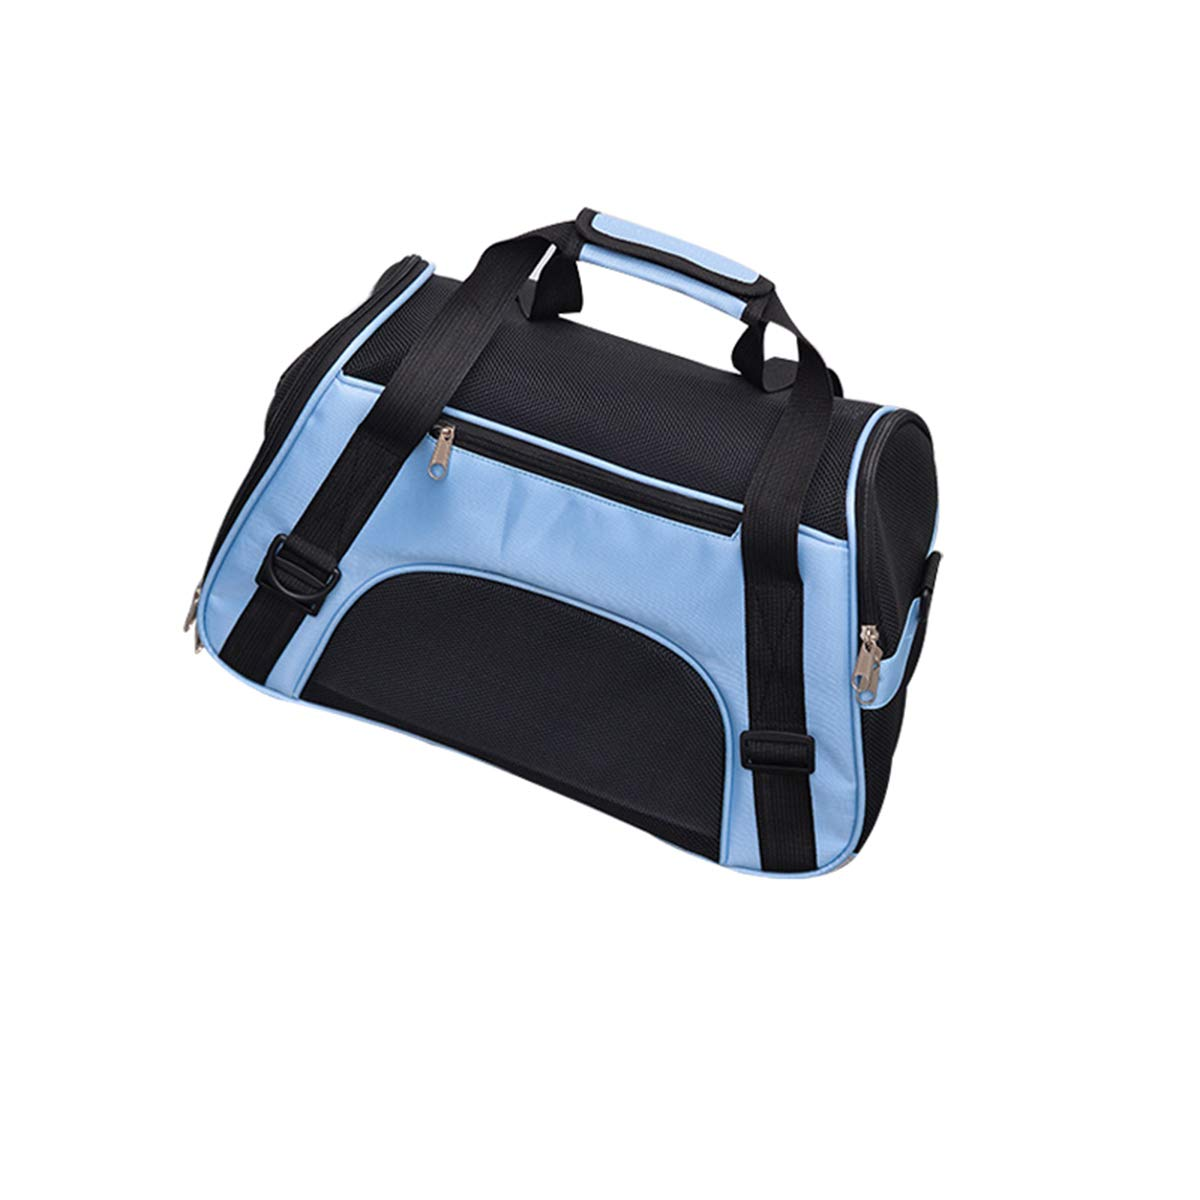 bluee Without Mat S bluee Without Mat S PETFDH 4 colors Small Dog Carrier Bag Folding Portable Cat Bag Soft Sided Dog Shoulder Bag Outdoor Pet Travel Bag for Dog Cats bluee Without Mat S